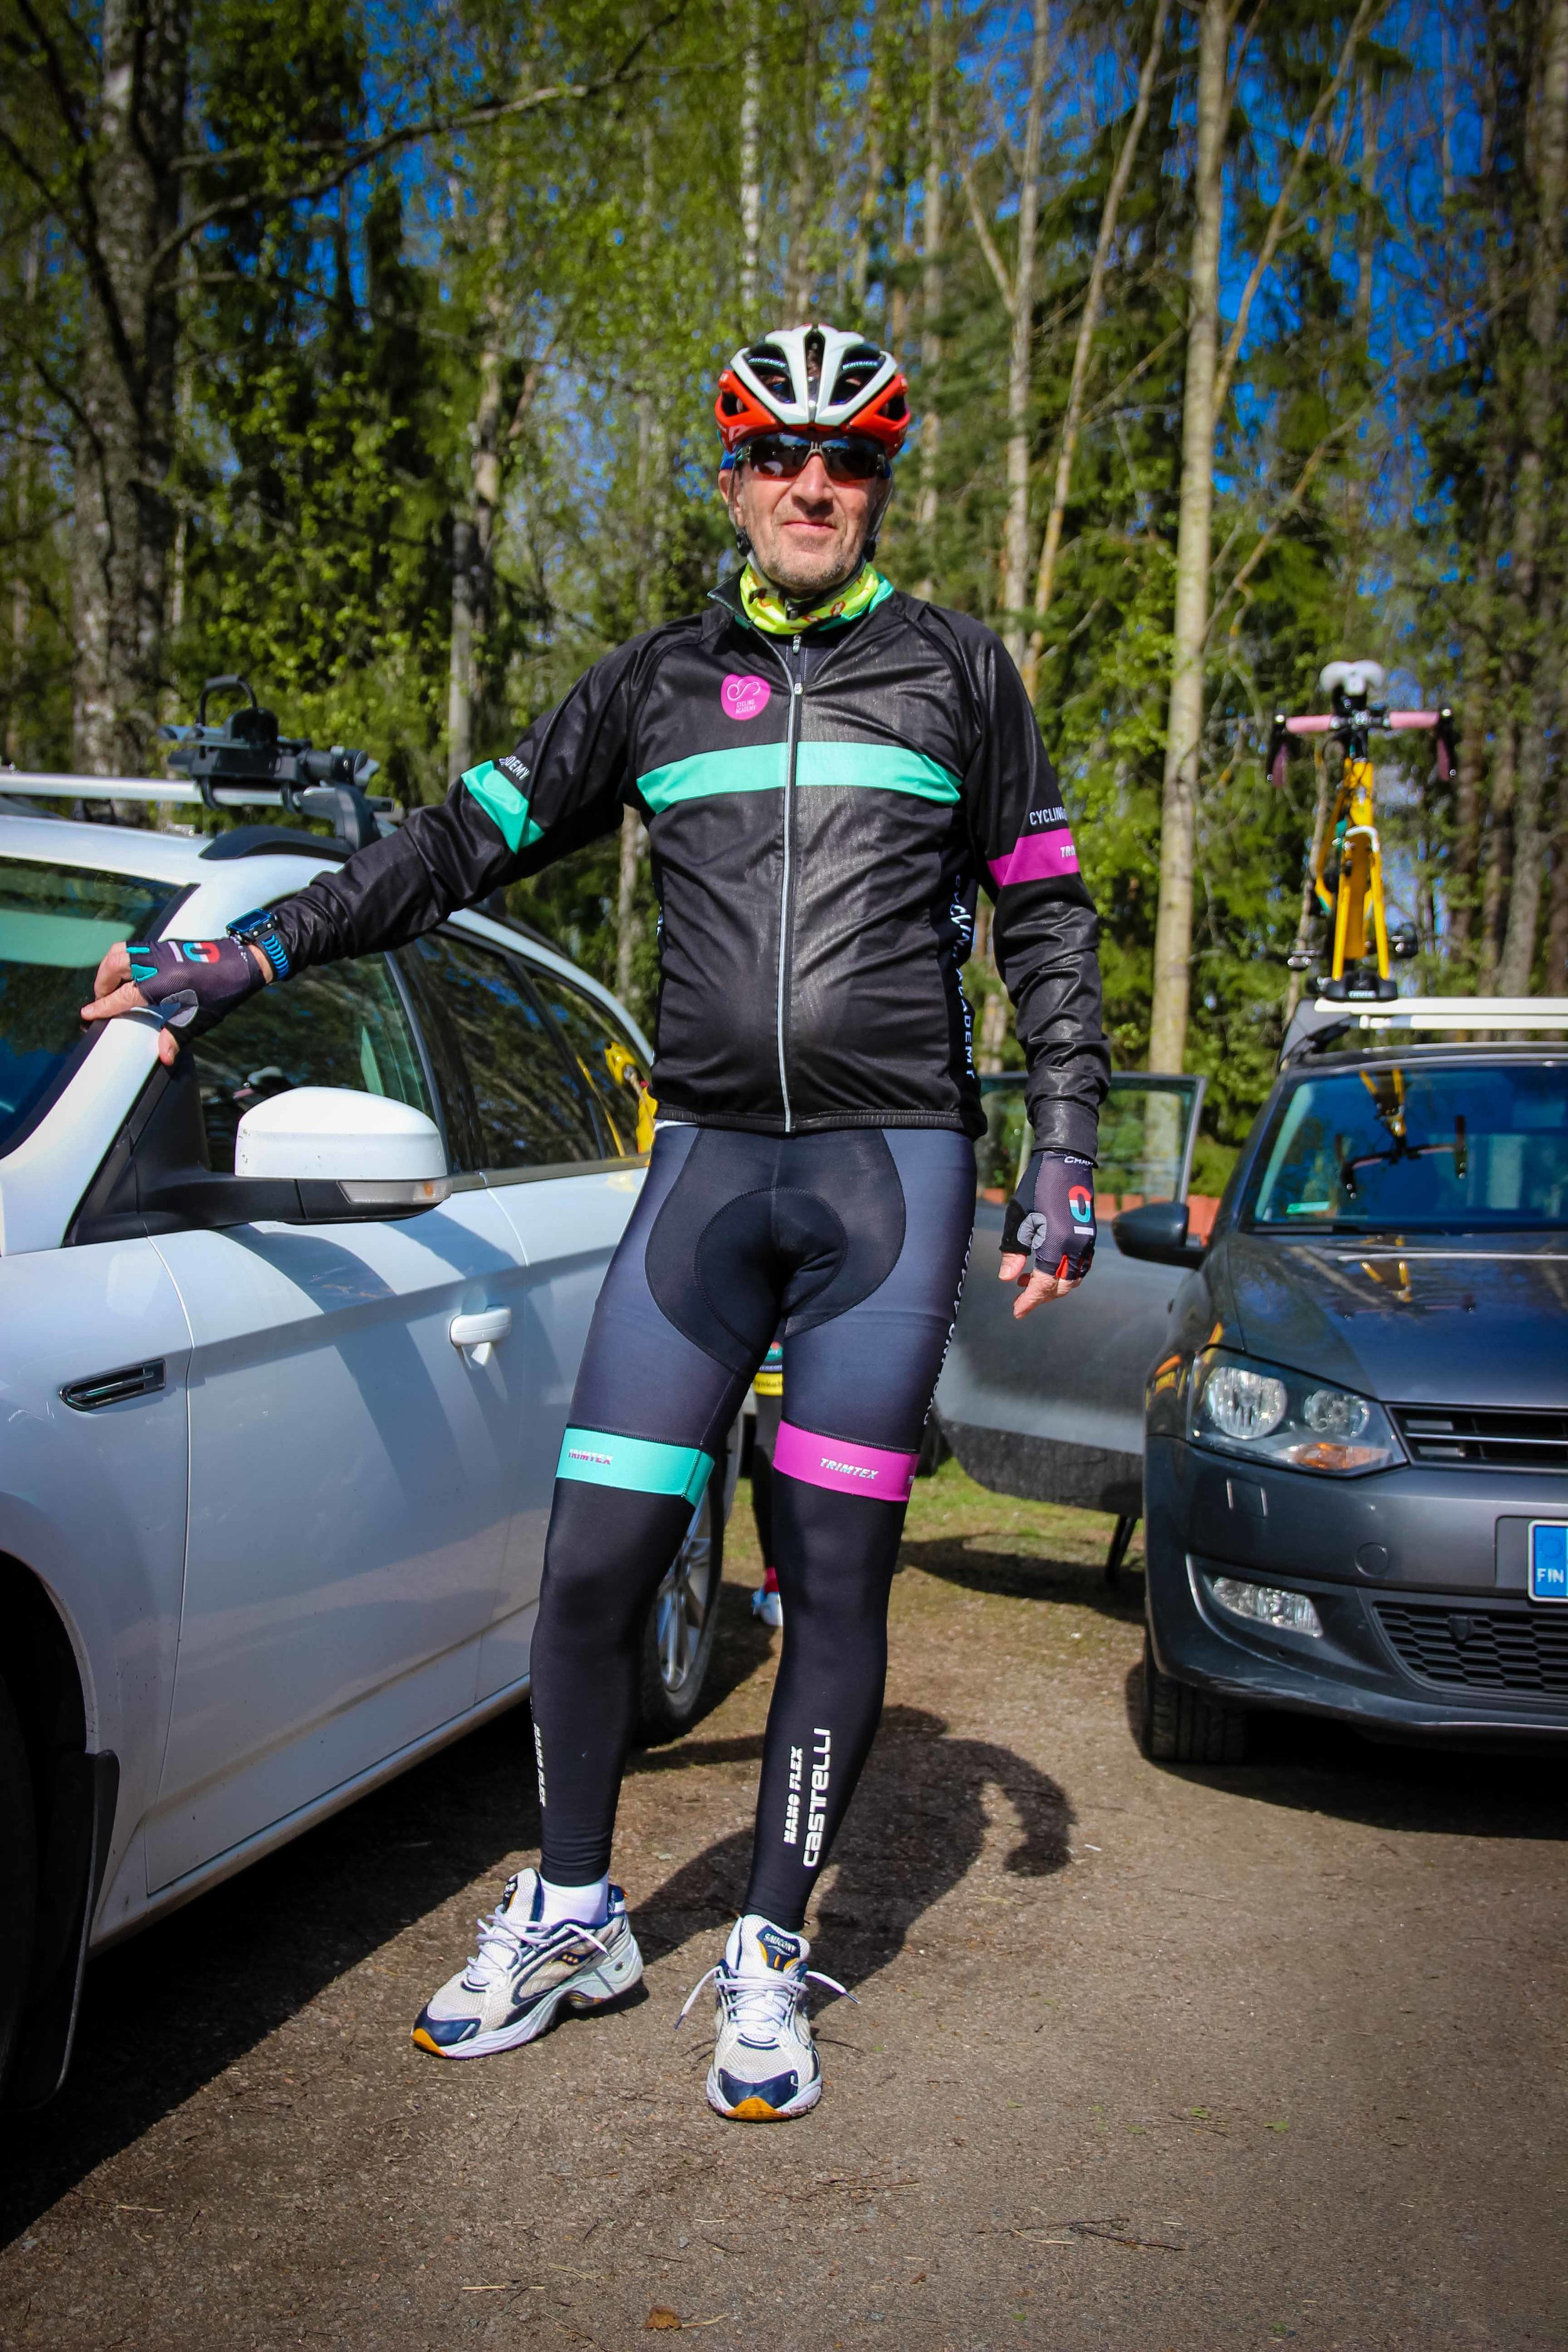 Peter Selin was all smiles before the race and would be commentating stage 9 of the Giro later on in the afternoon.